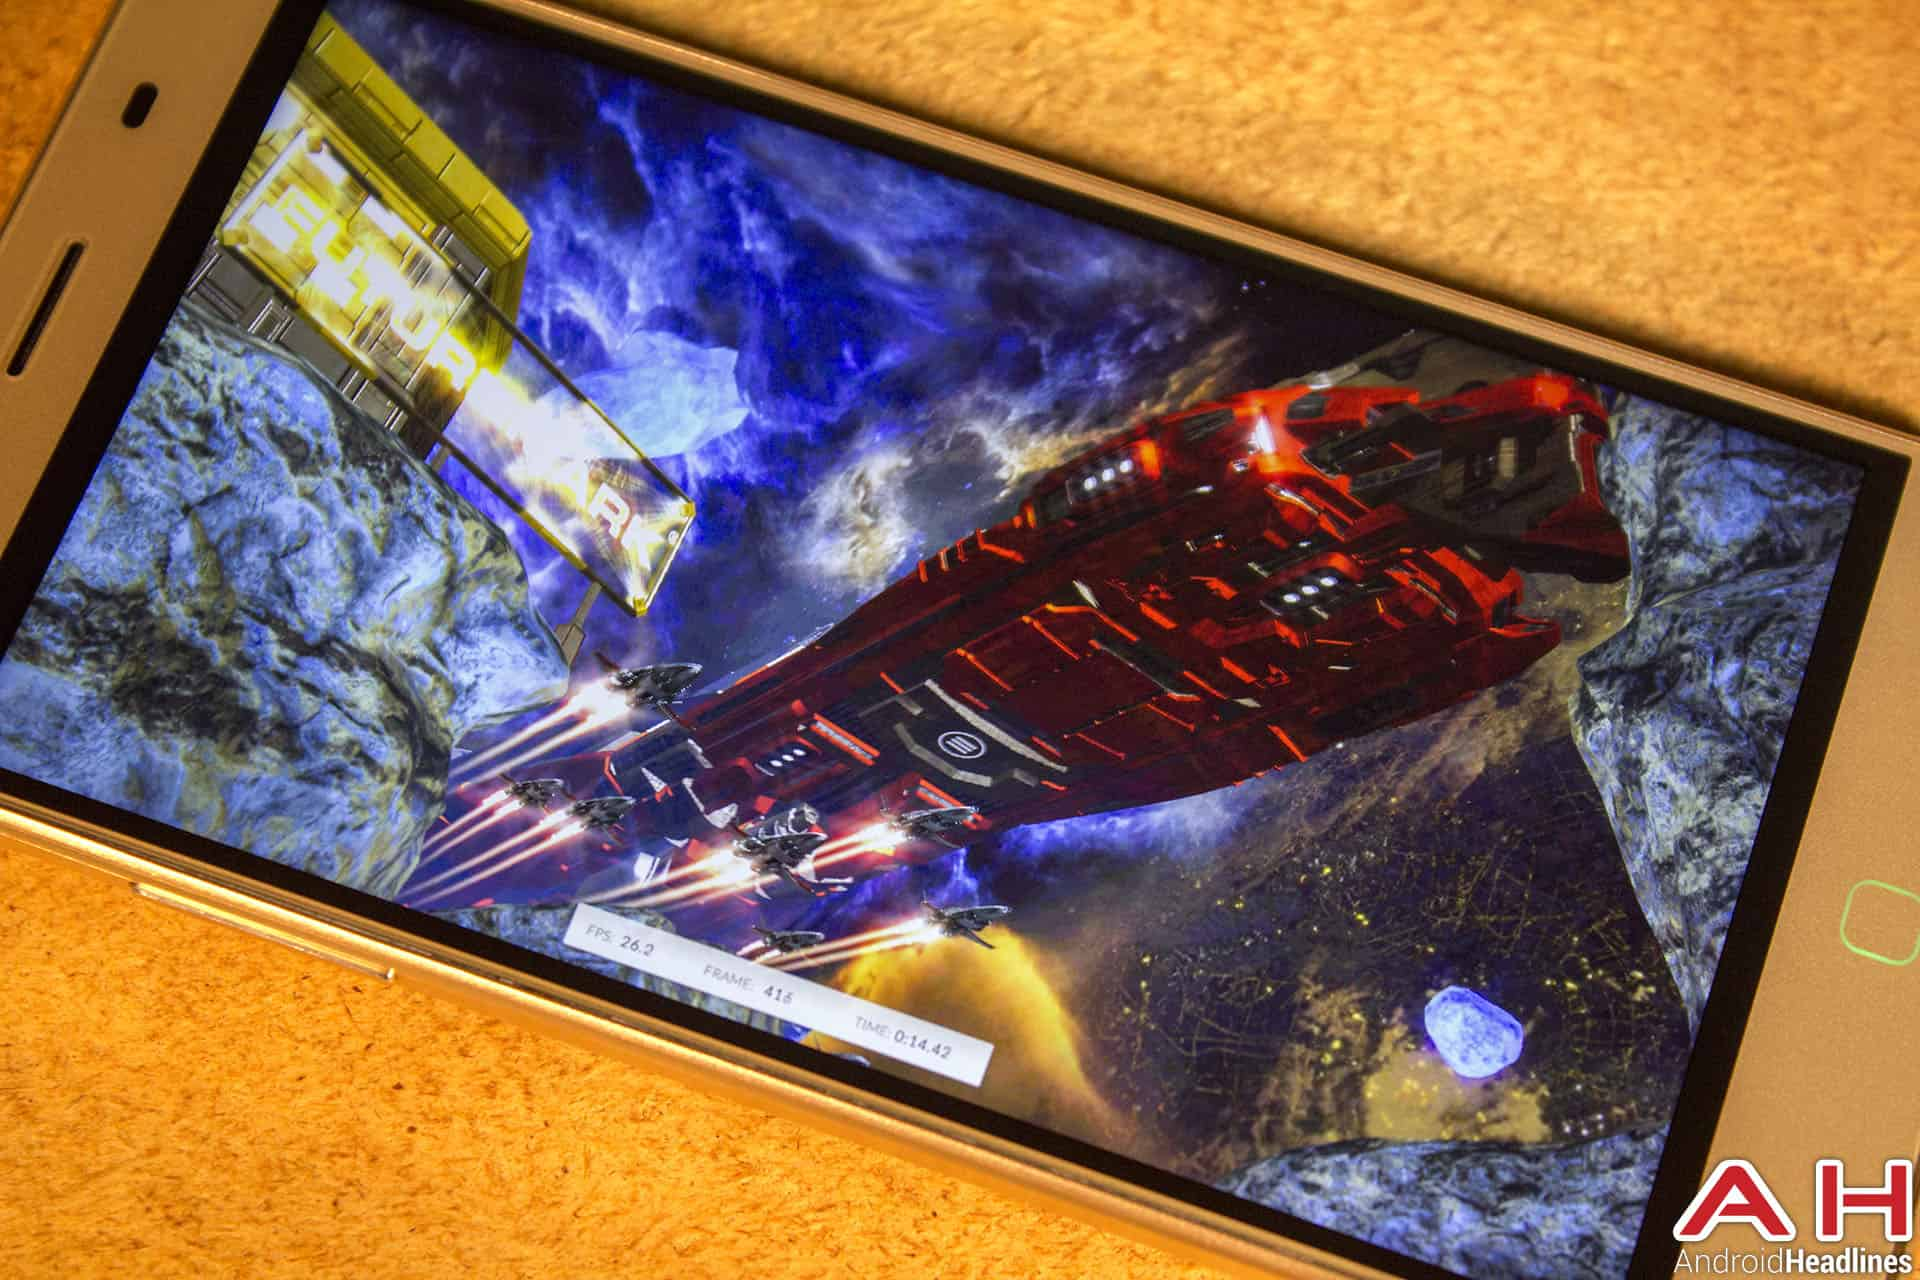 Elephone-P7000-Review-AH-display